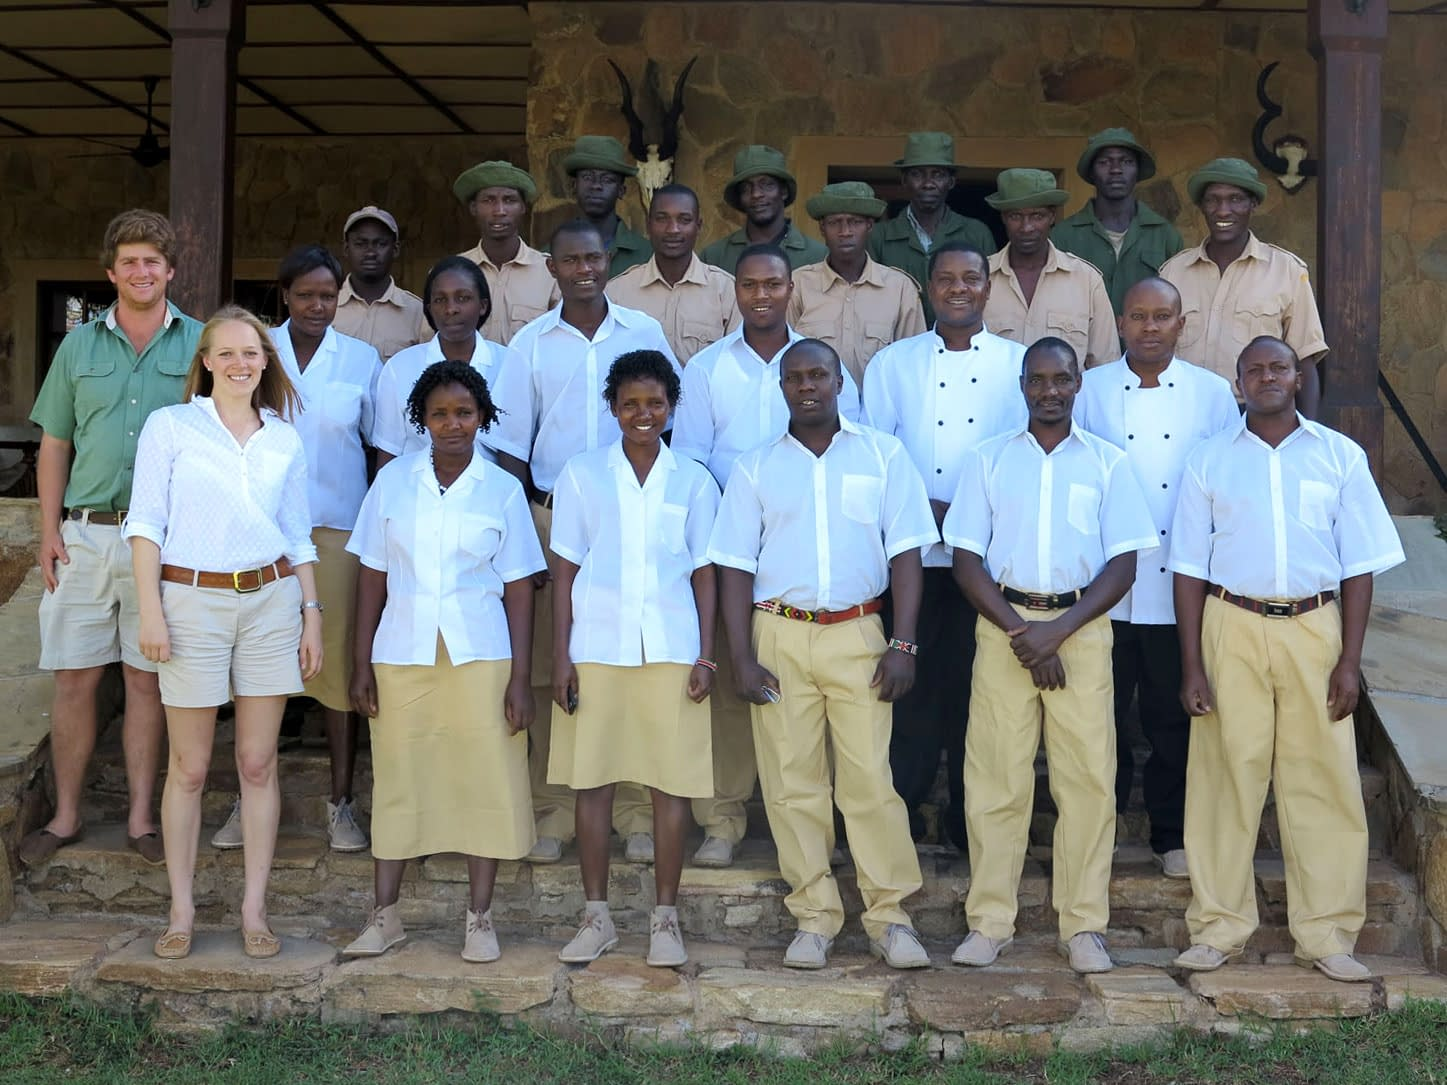 The Sosian team photo of some of the Guides, Chefs and Security staff